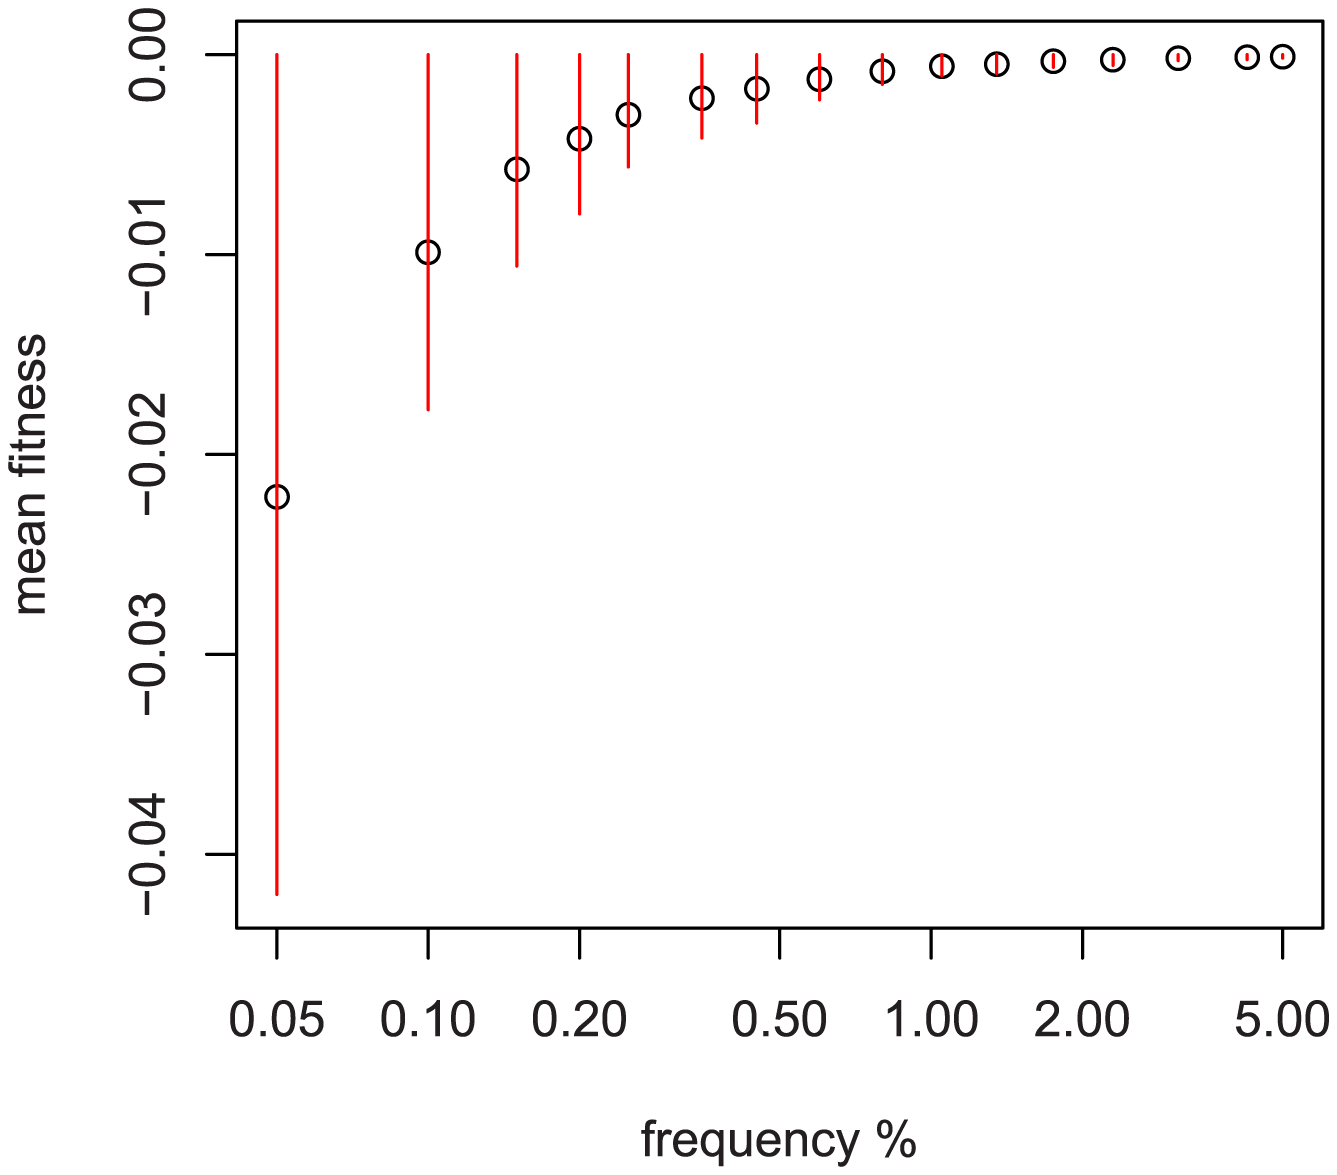 Relationship between sampled frequency and mean fitness.